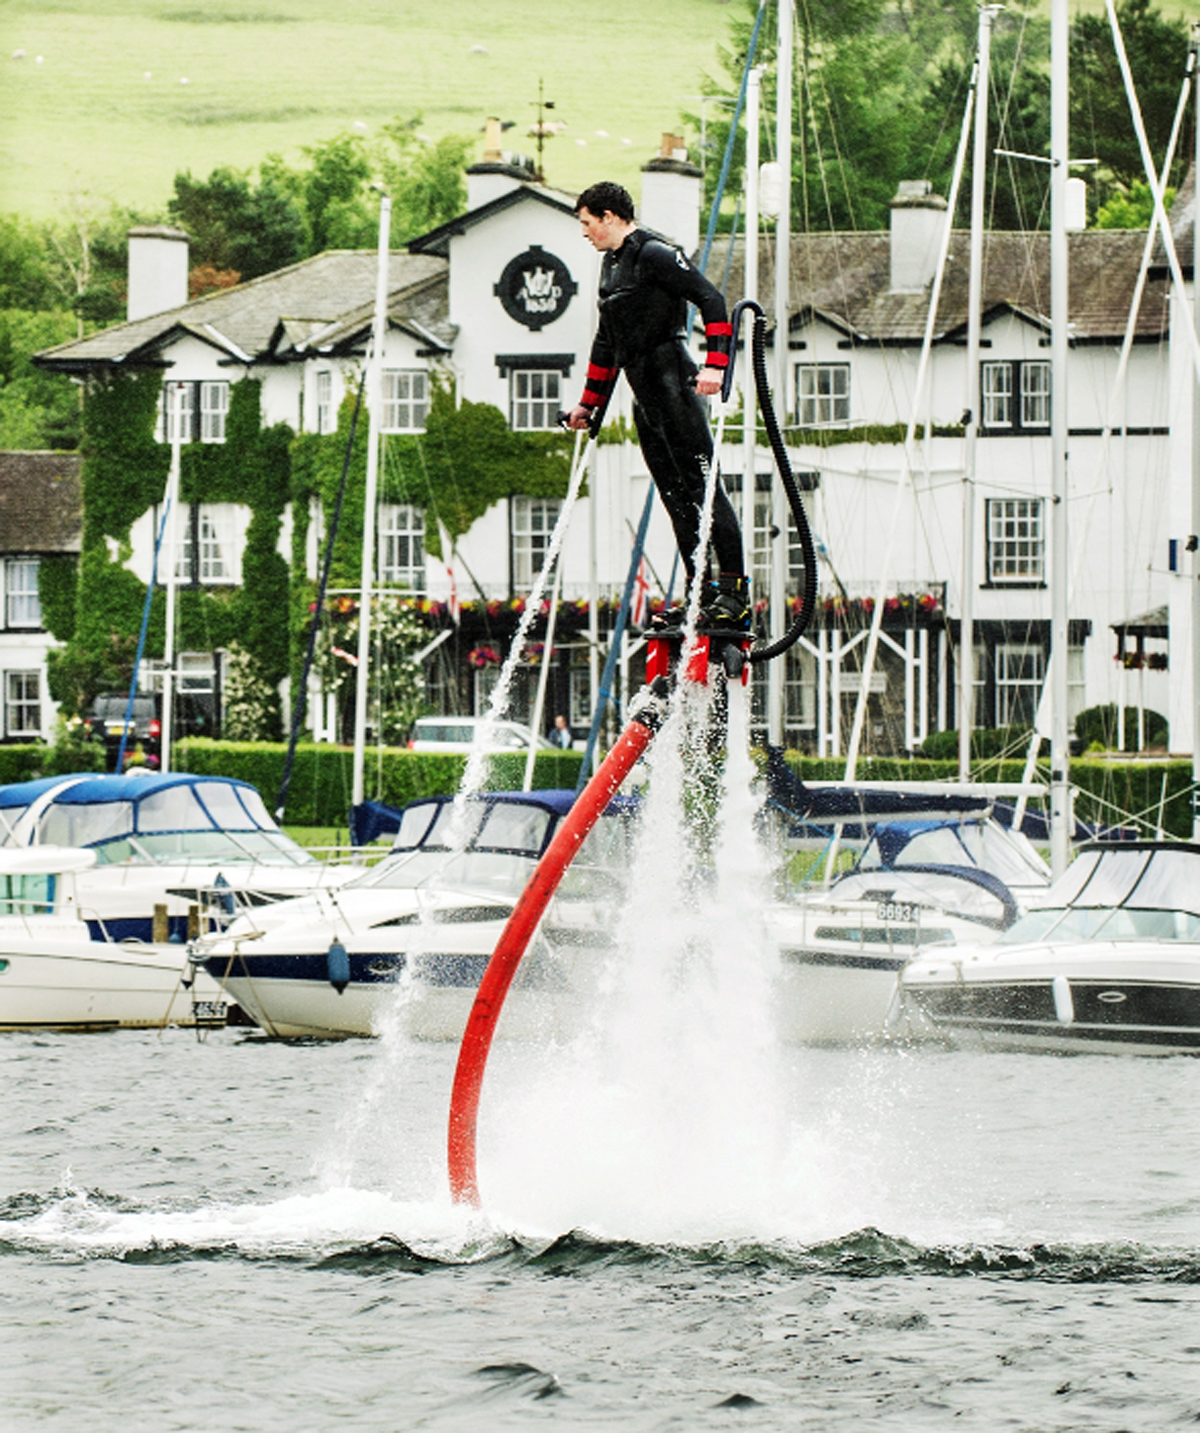 A rider demonstrates the art of flyboarding in a special session at Low Wood Bay, Ambleside